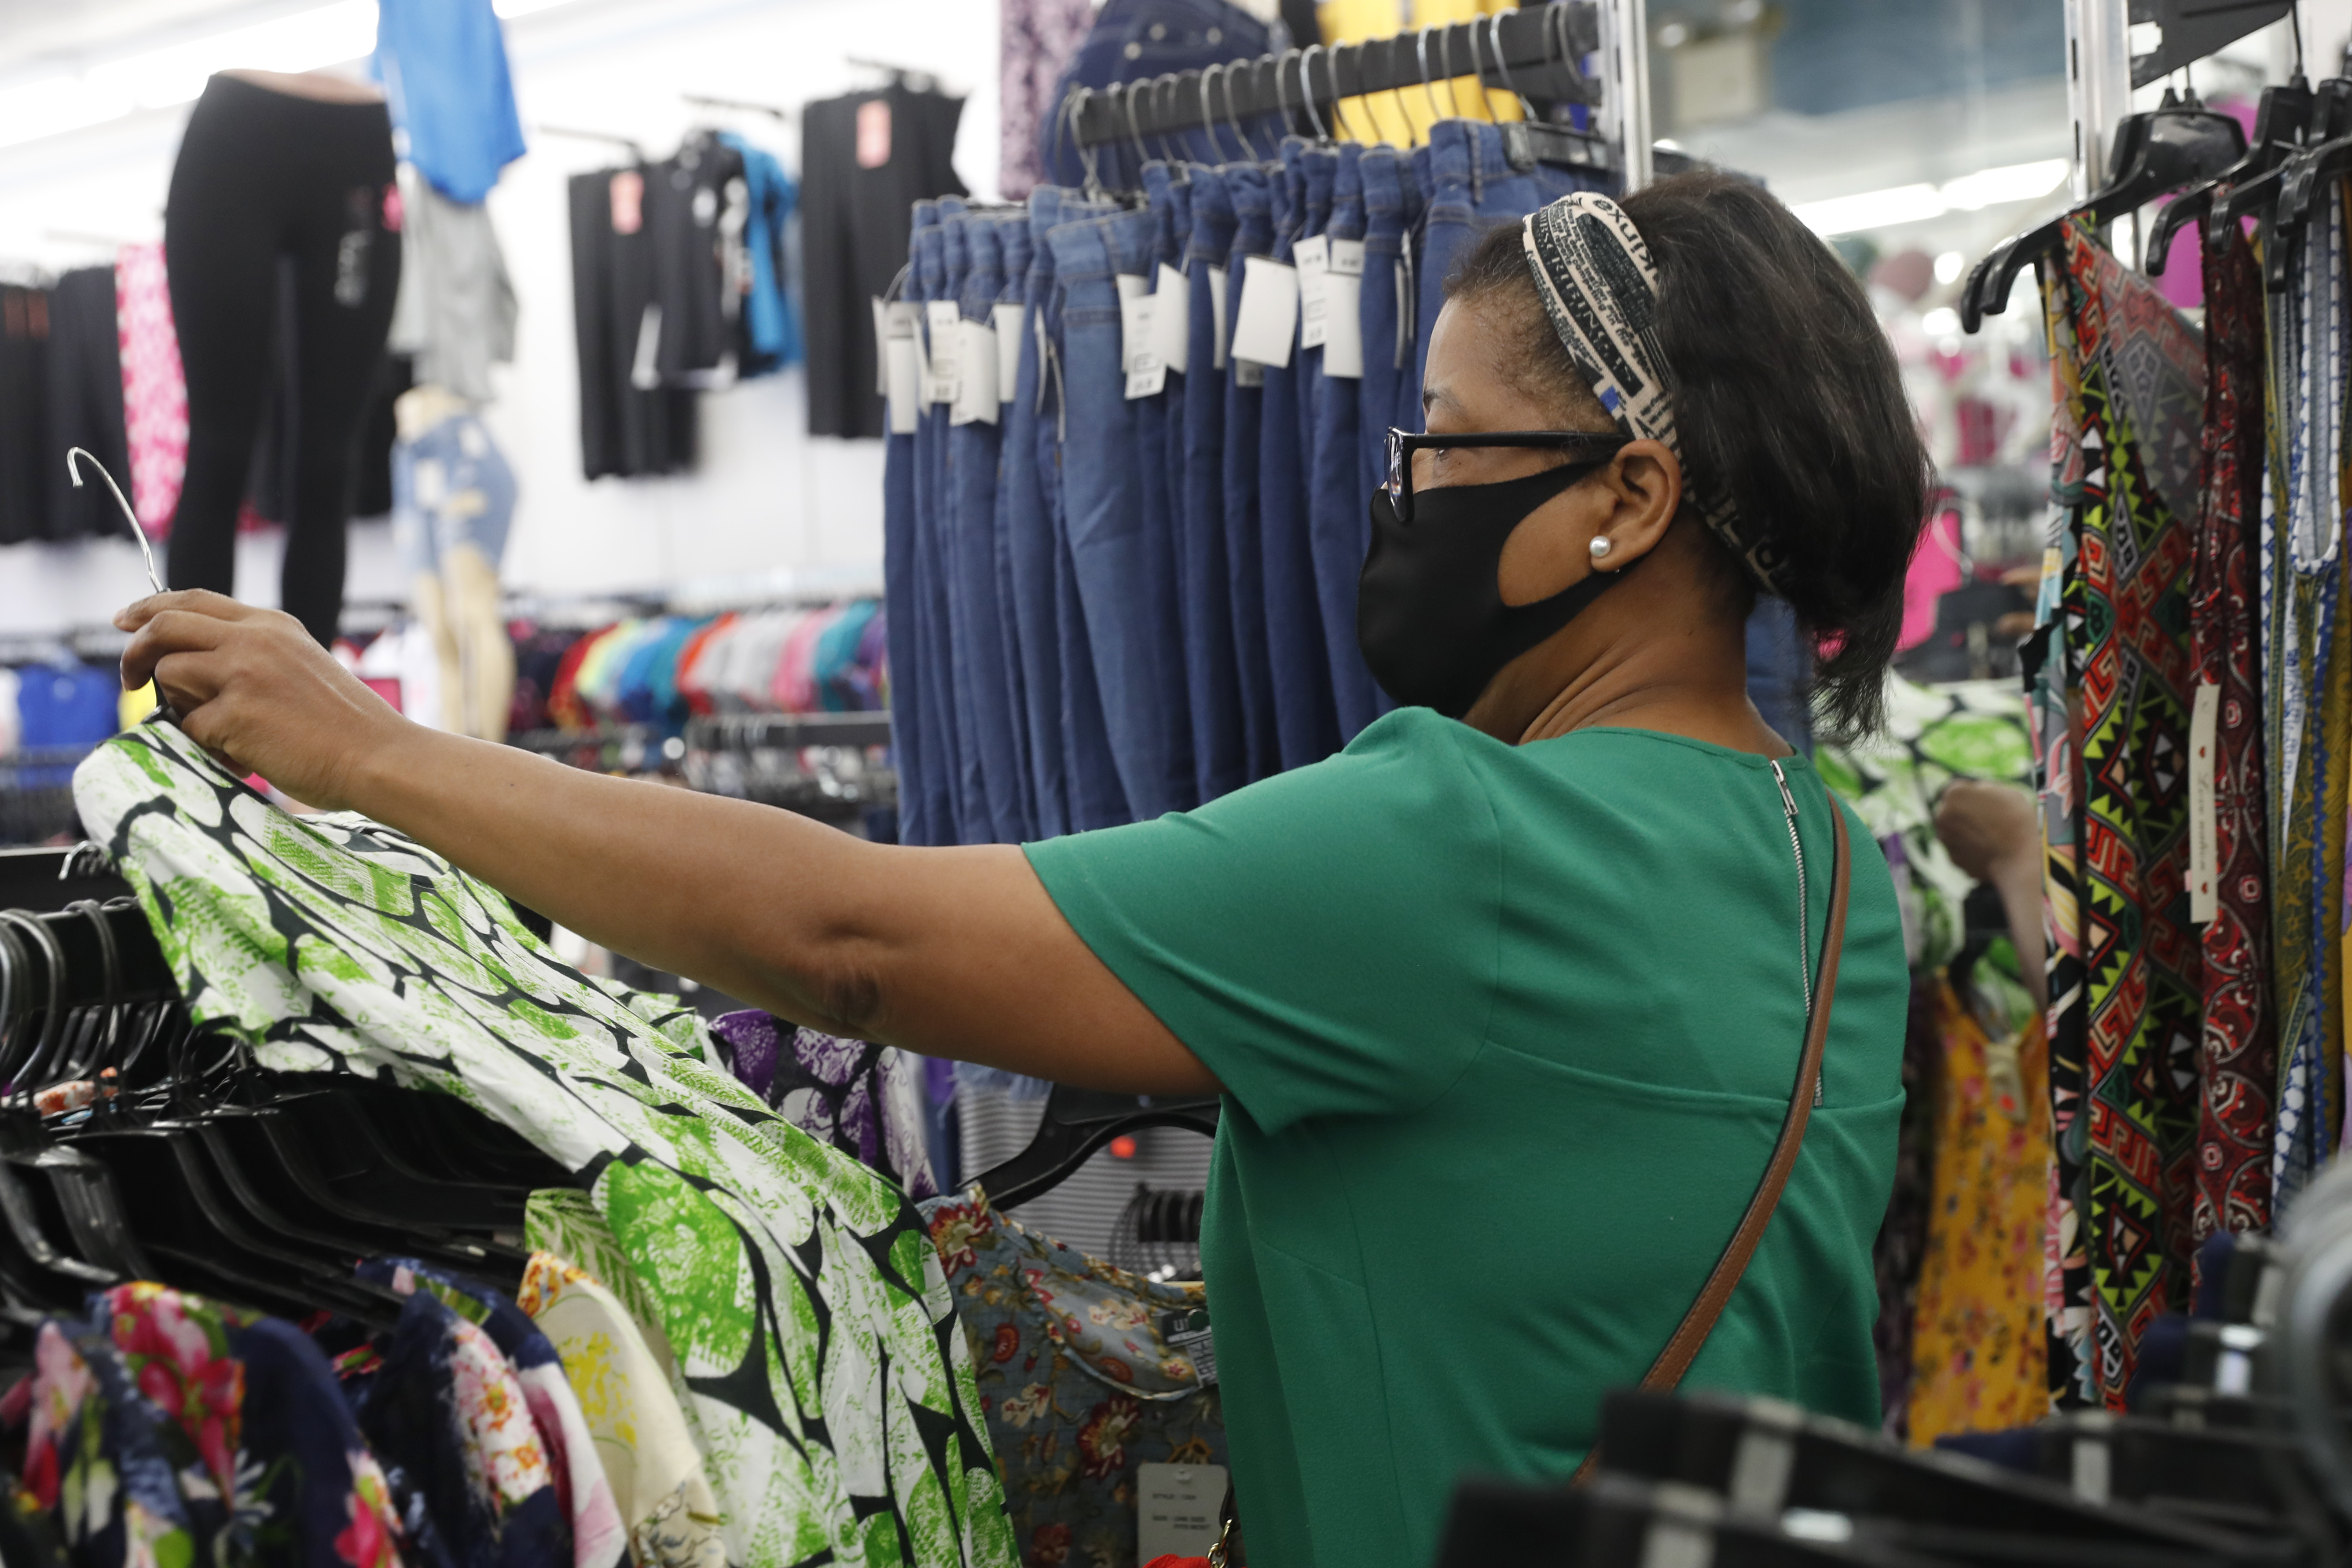 A buyer shops for clothing inside a MiniMax store on Monday